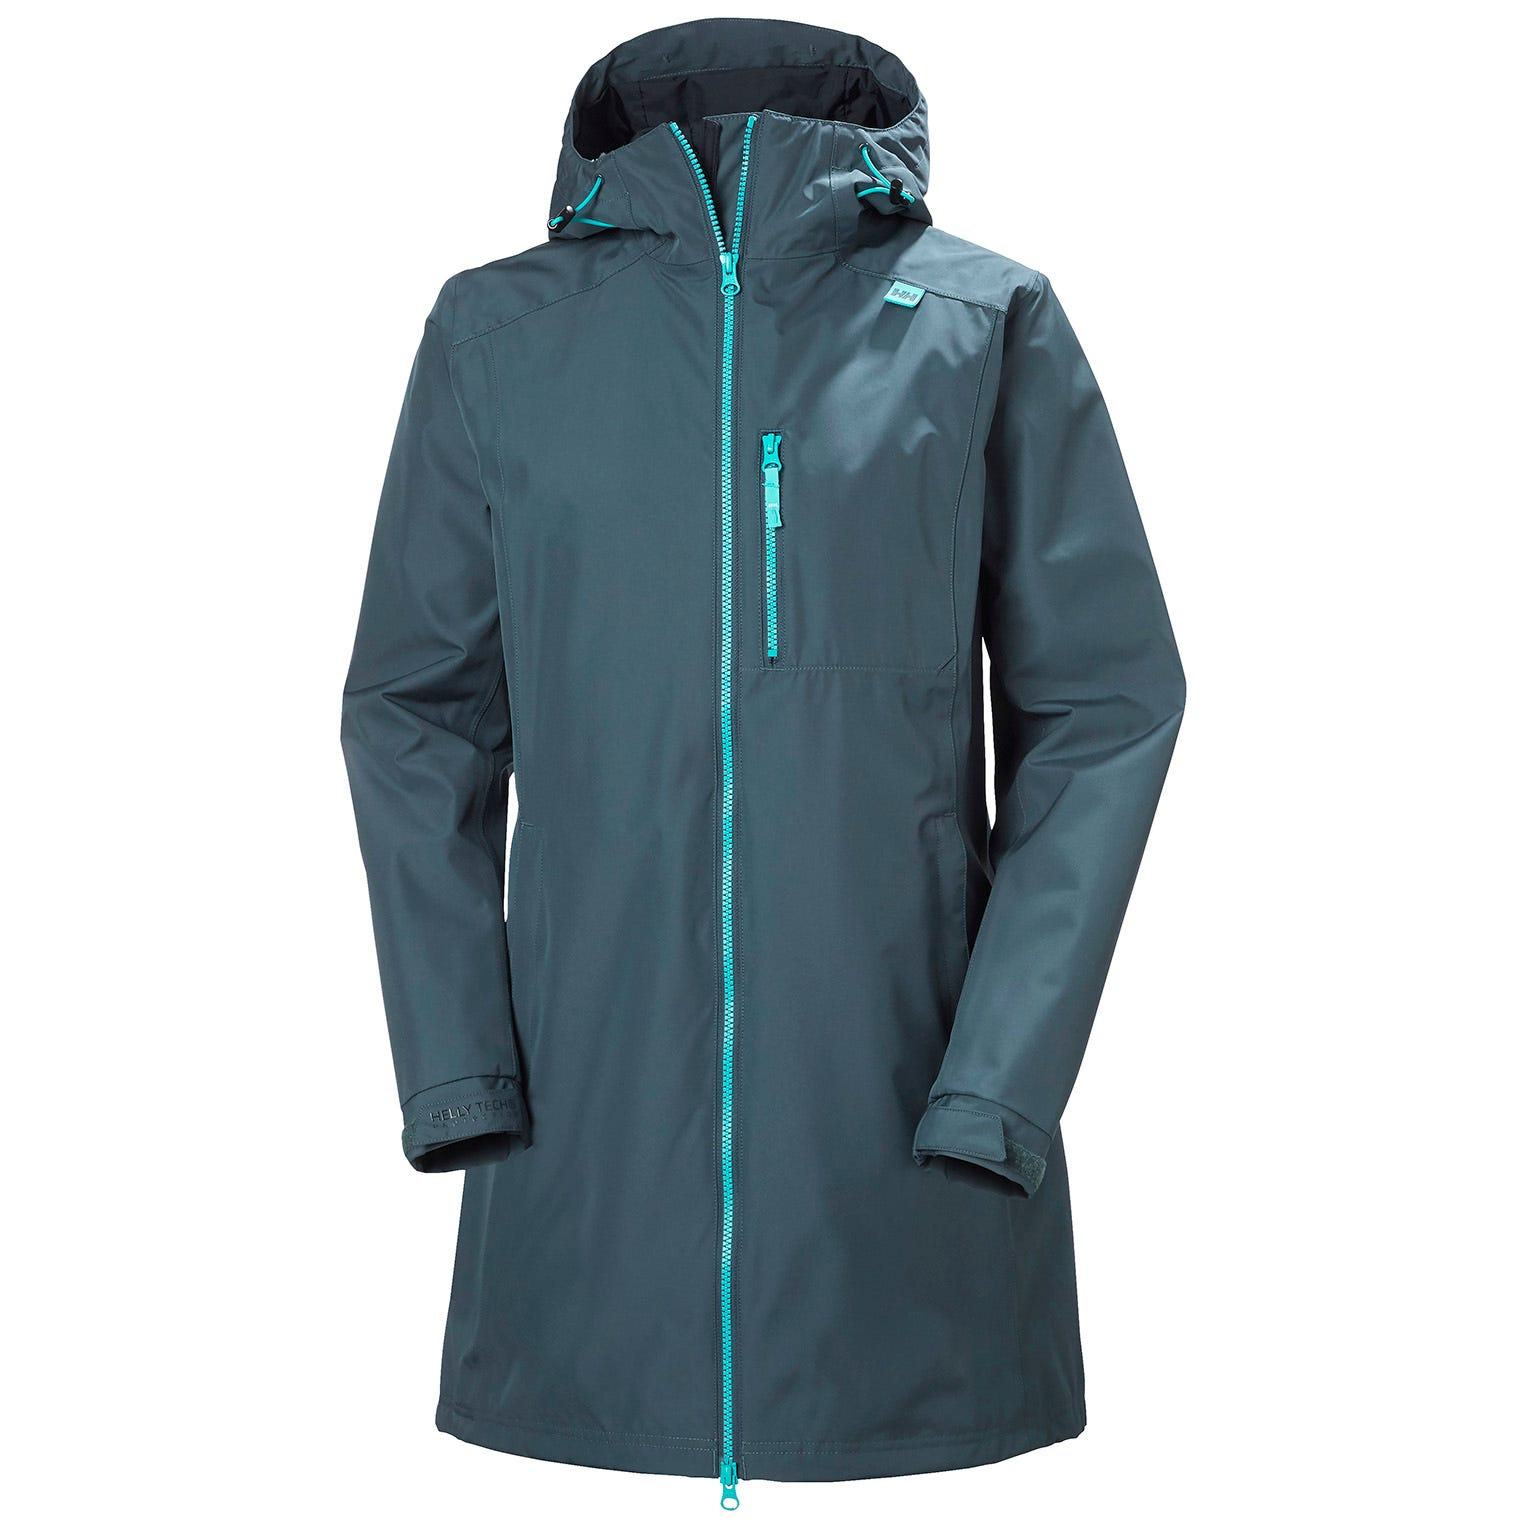 Womens Long Belfast 3/4 Length Rain Jacket | Helly Hansen Womens XS